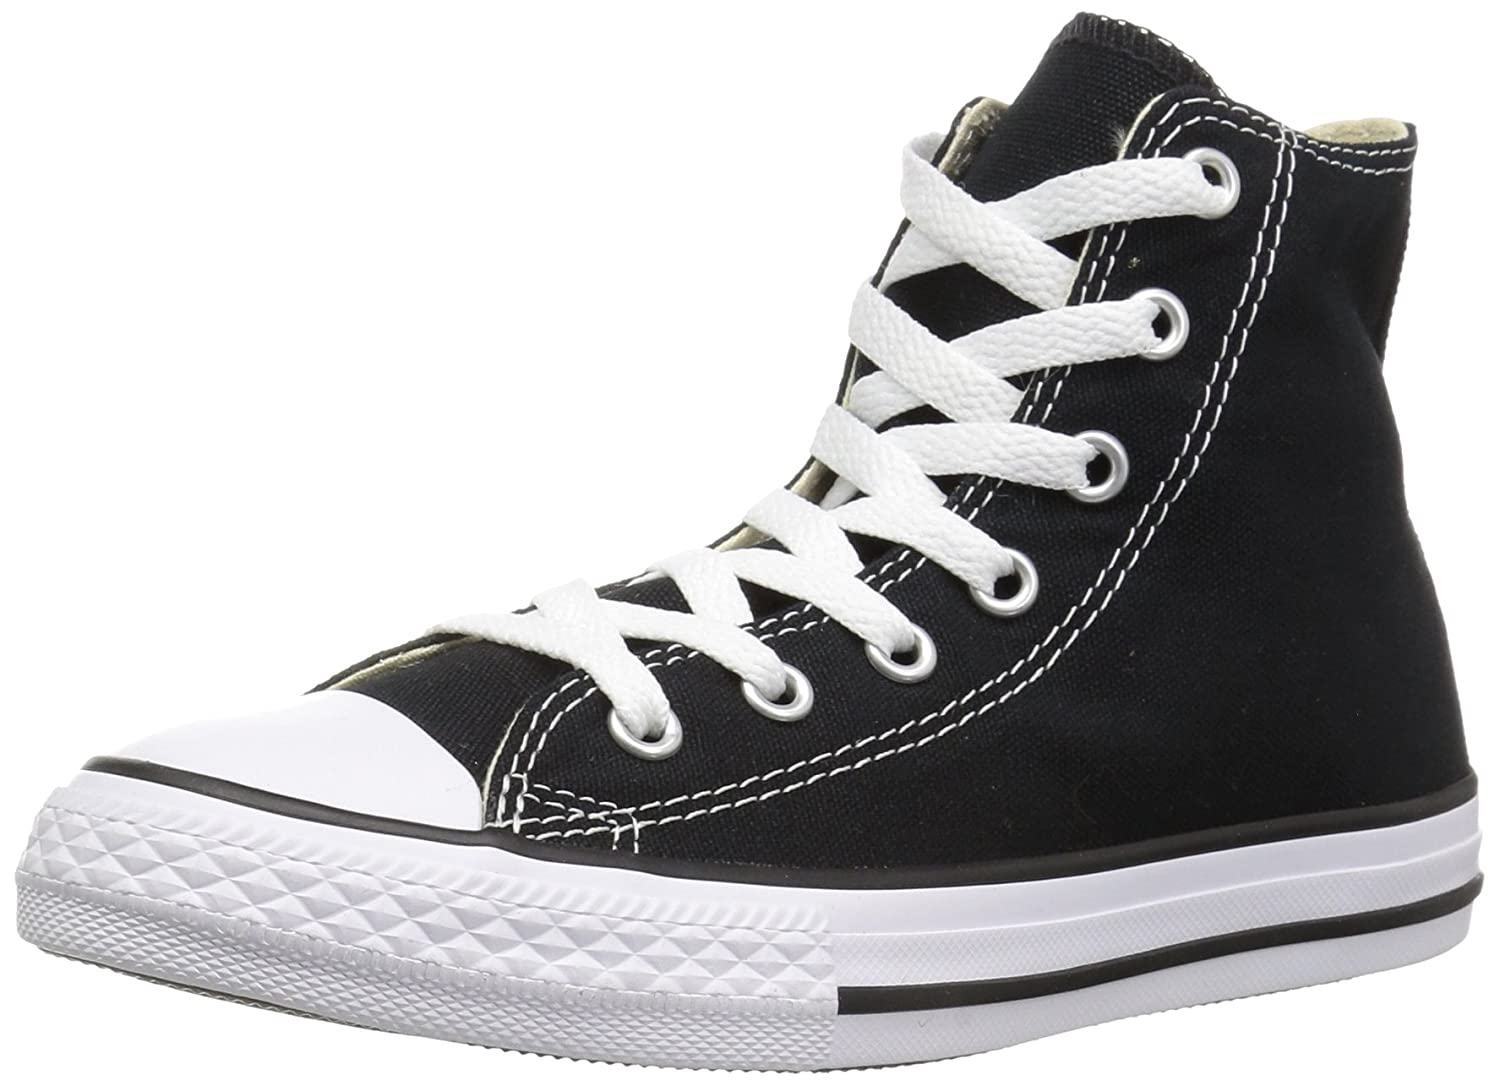 Converse Chuck Taylor All Star High Top B000EDMSTY 8.5 US Men/10.5 US Women|Black